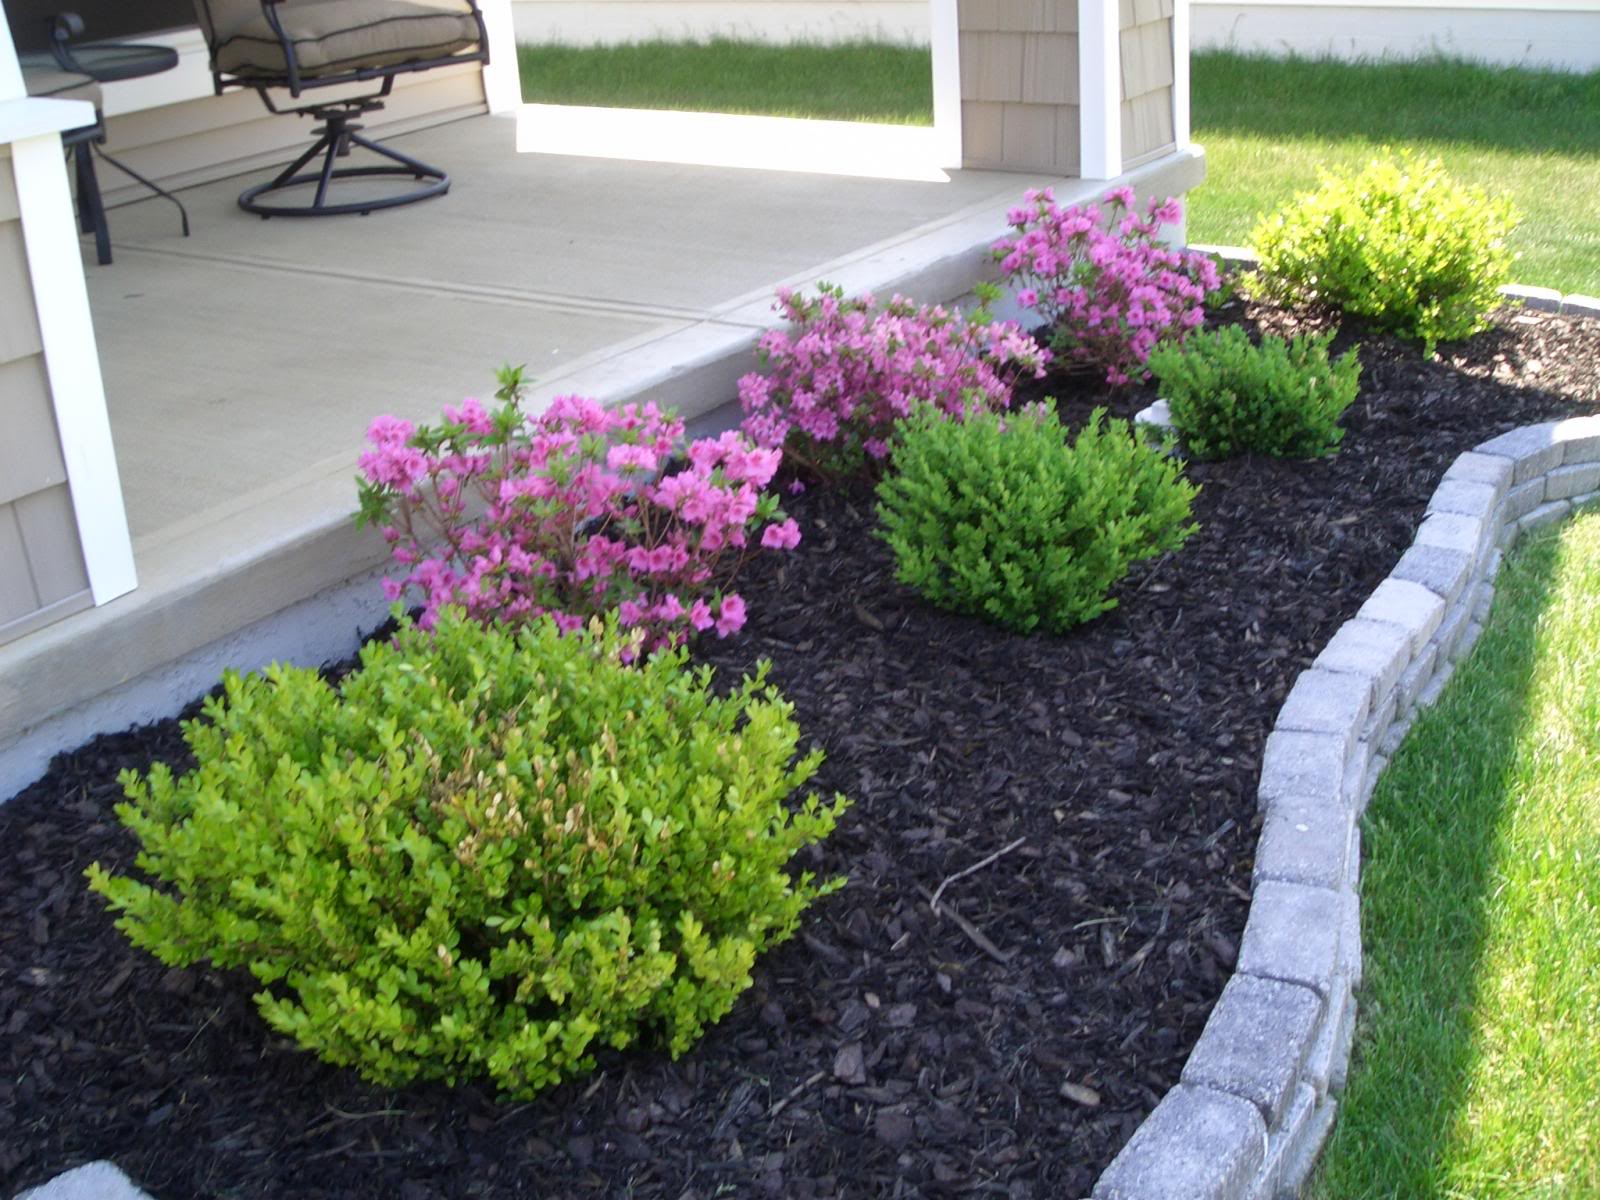 3 landscaping landscape plants ideas for Ideas for planting flowers in front yard